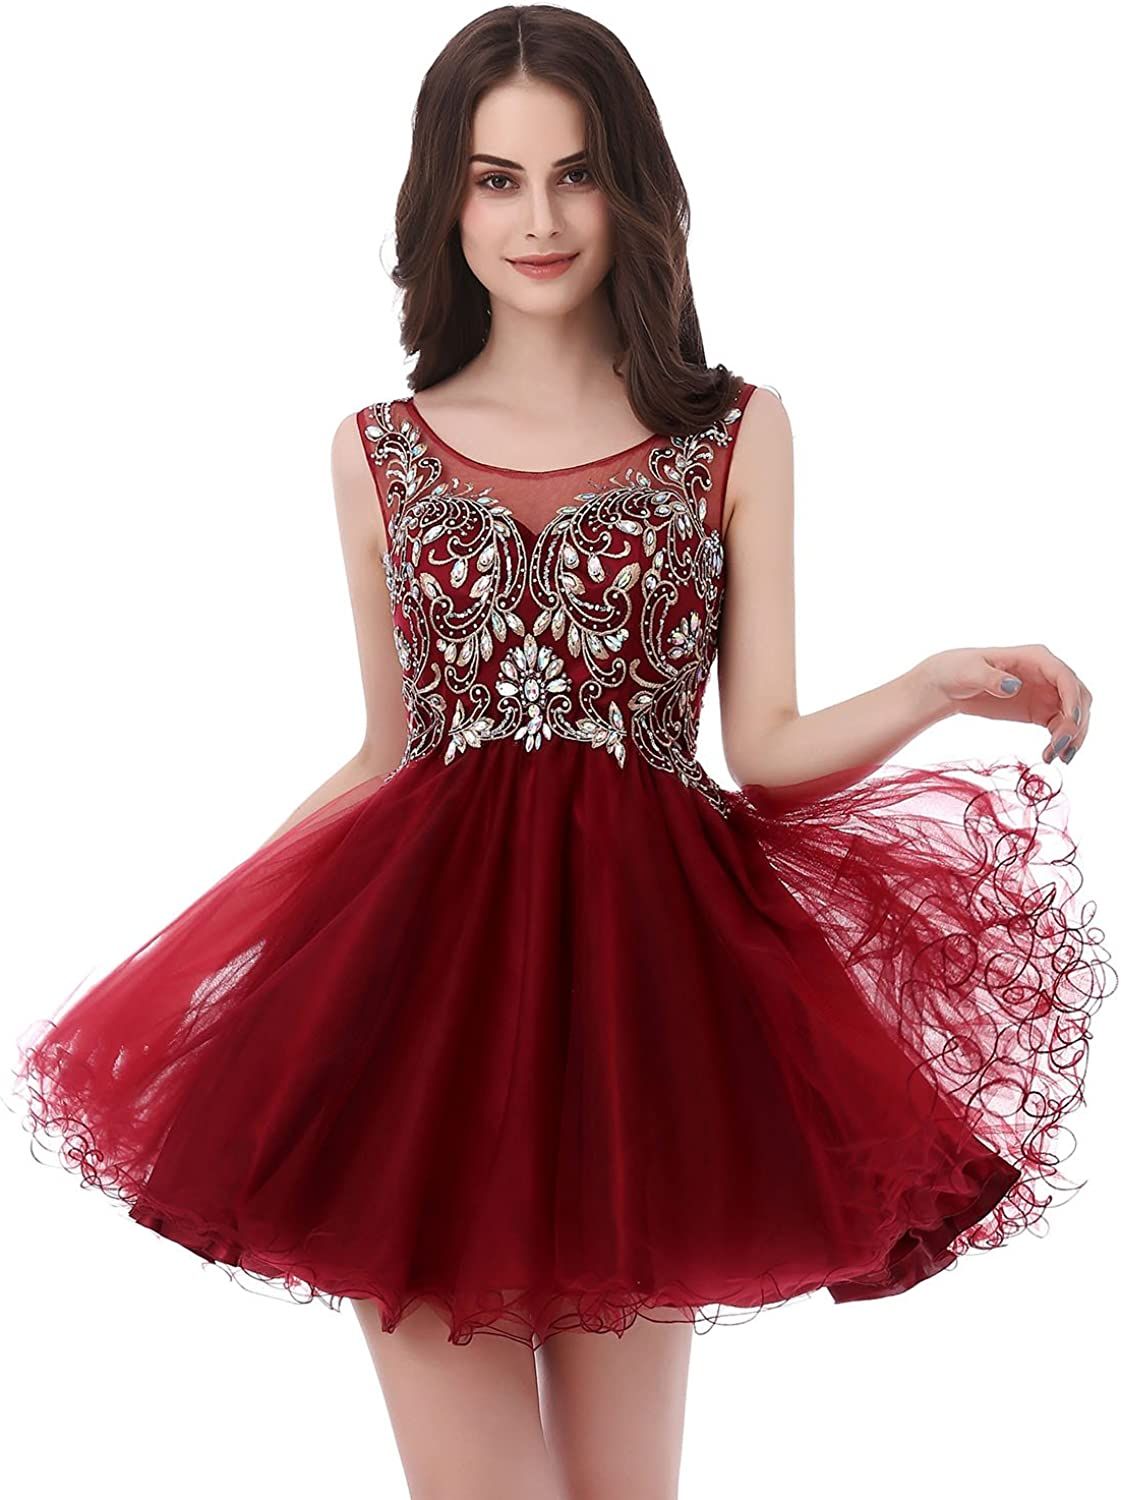 Sarahbridal Women's Short Tulle Beading Homecoming Dresses 2021 Prom Party Gowns